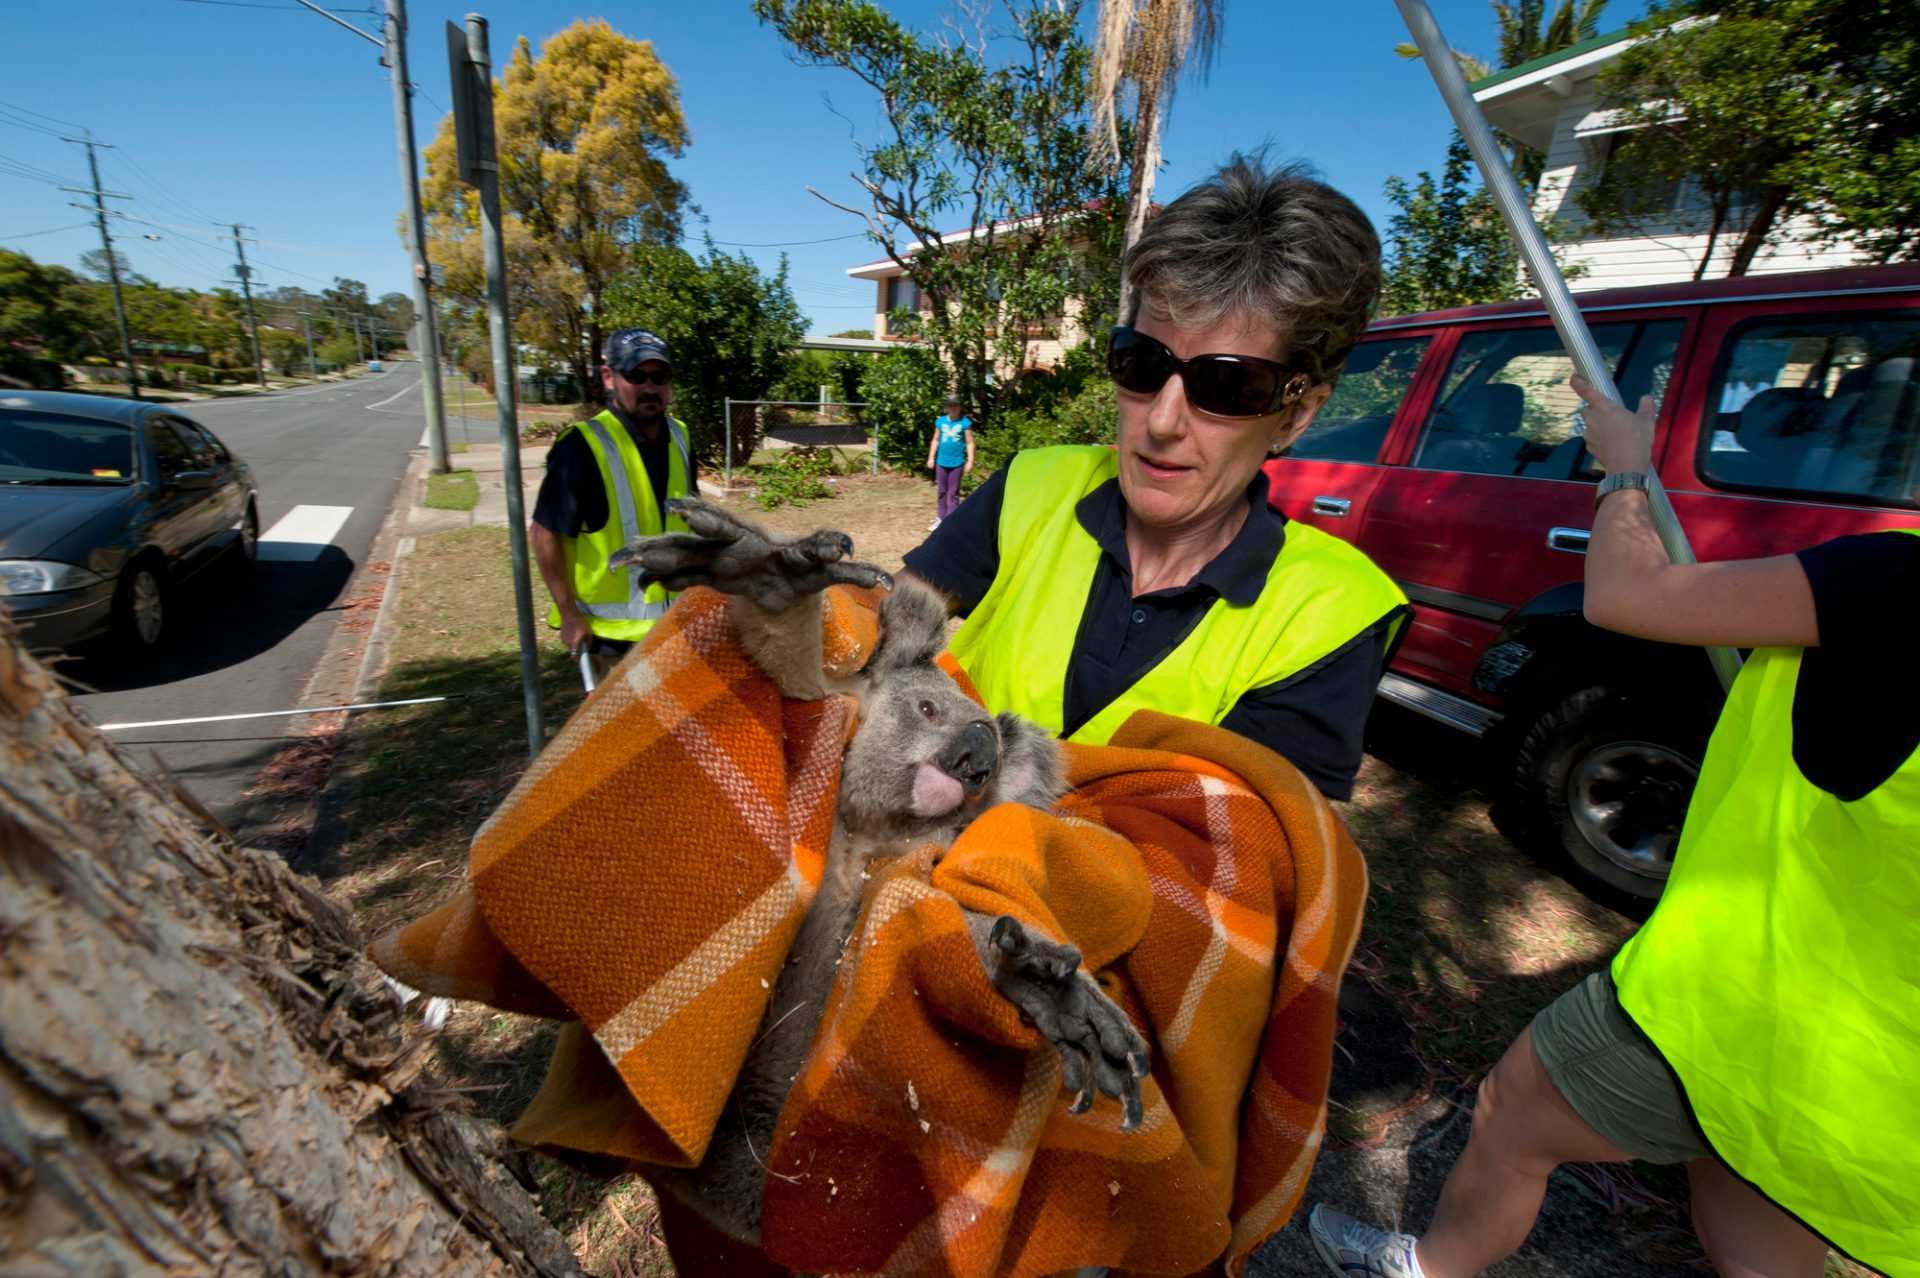 Photo: Megan Aitken of the Moreton Bay Koala Rescue Team uses a blanket to secure a young male koala who had been hit by a car.